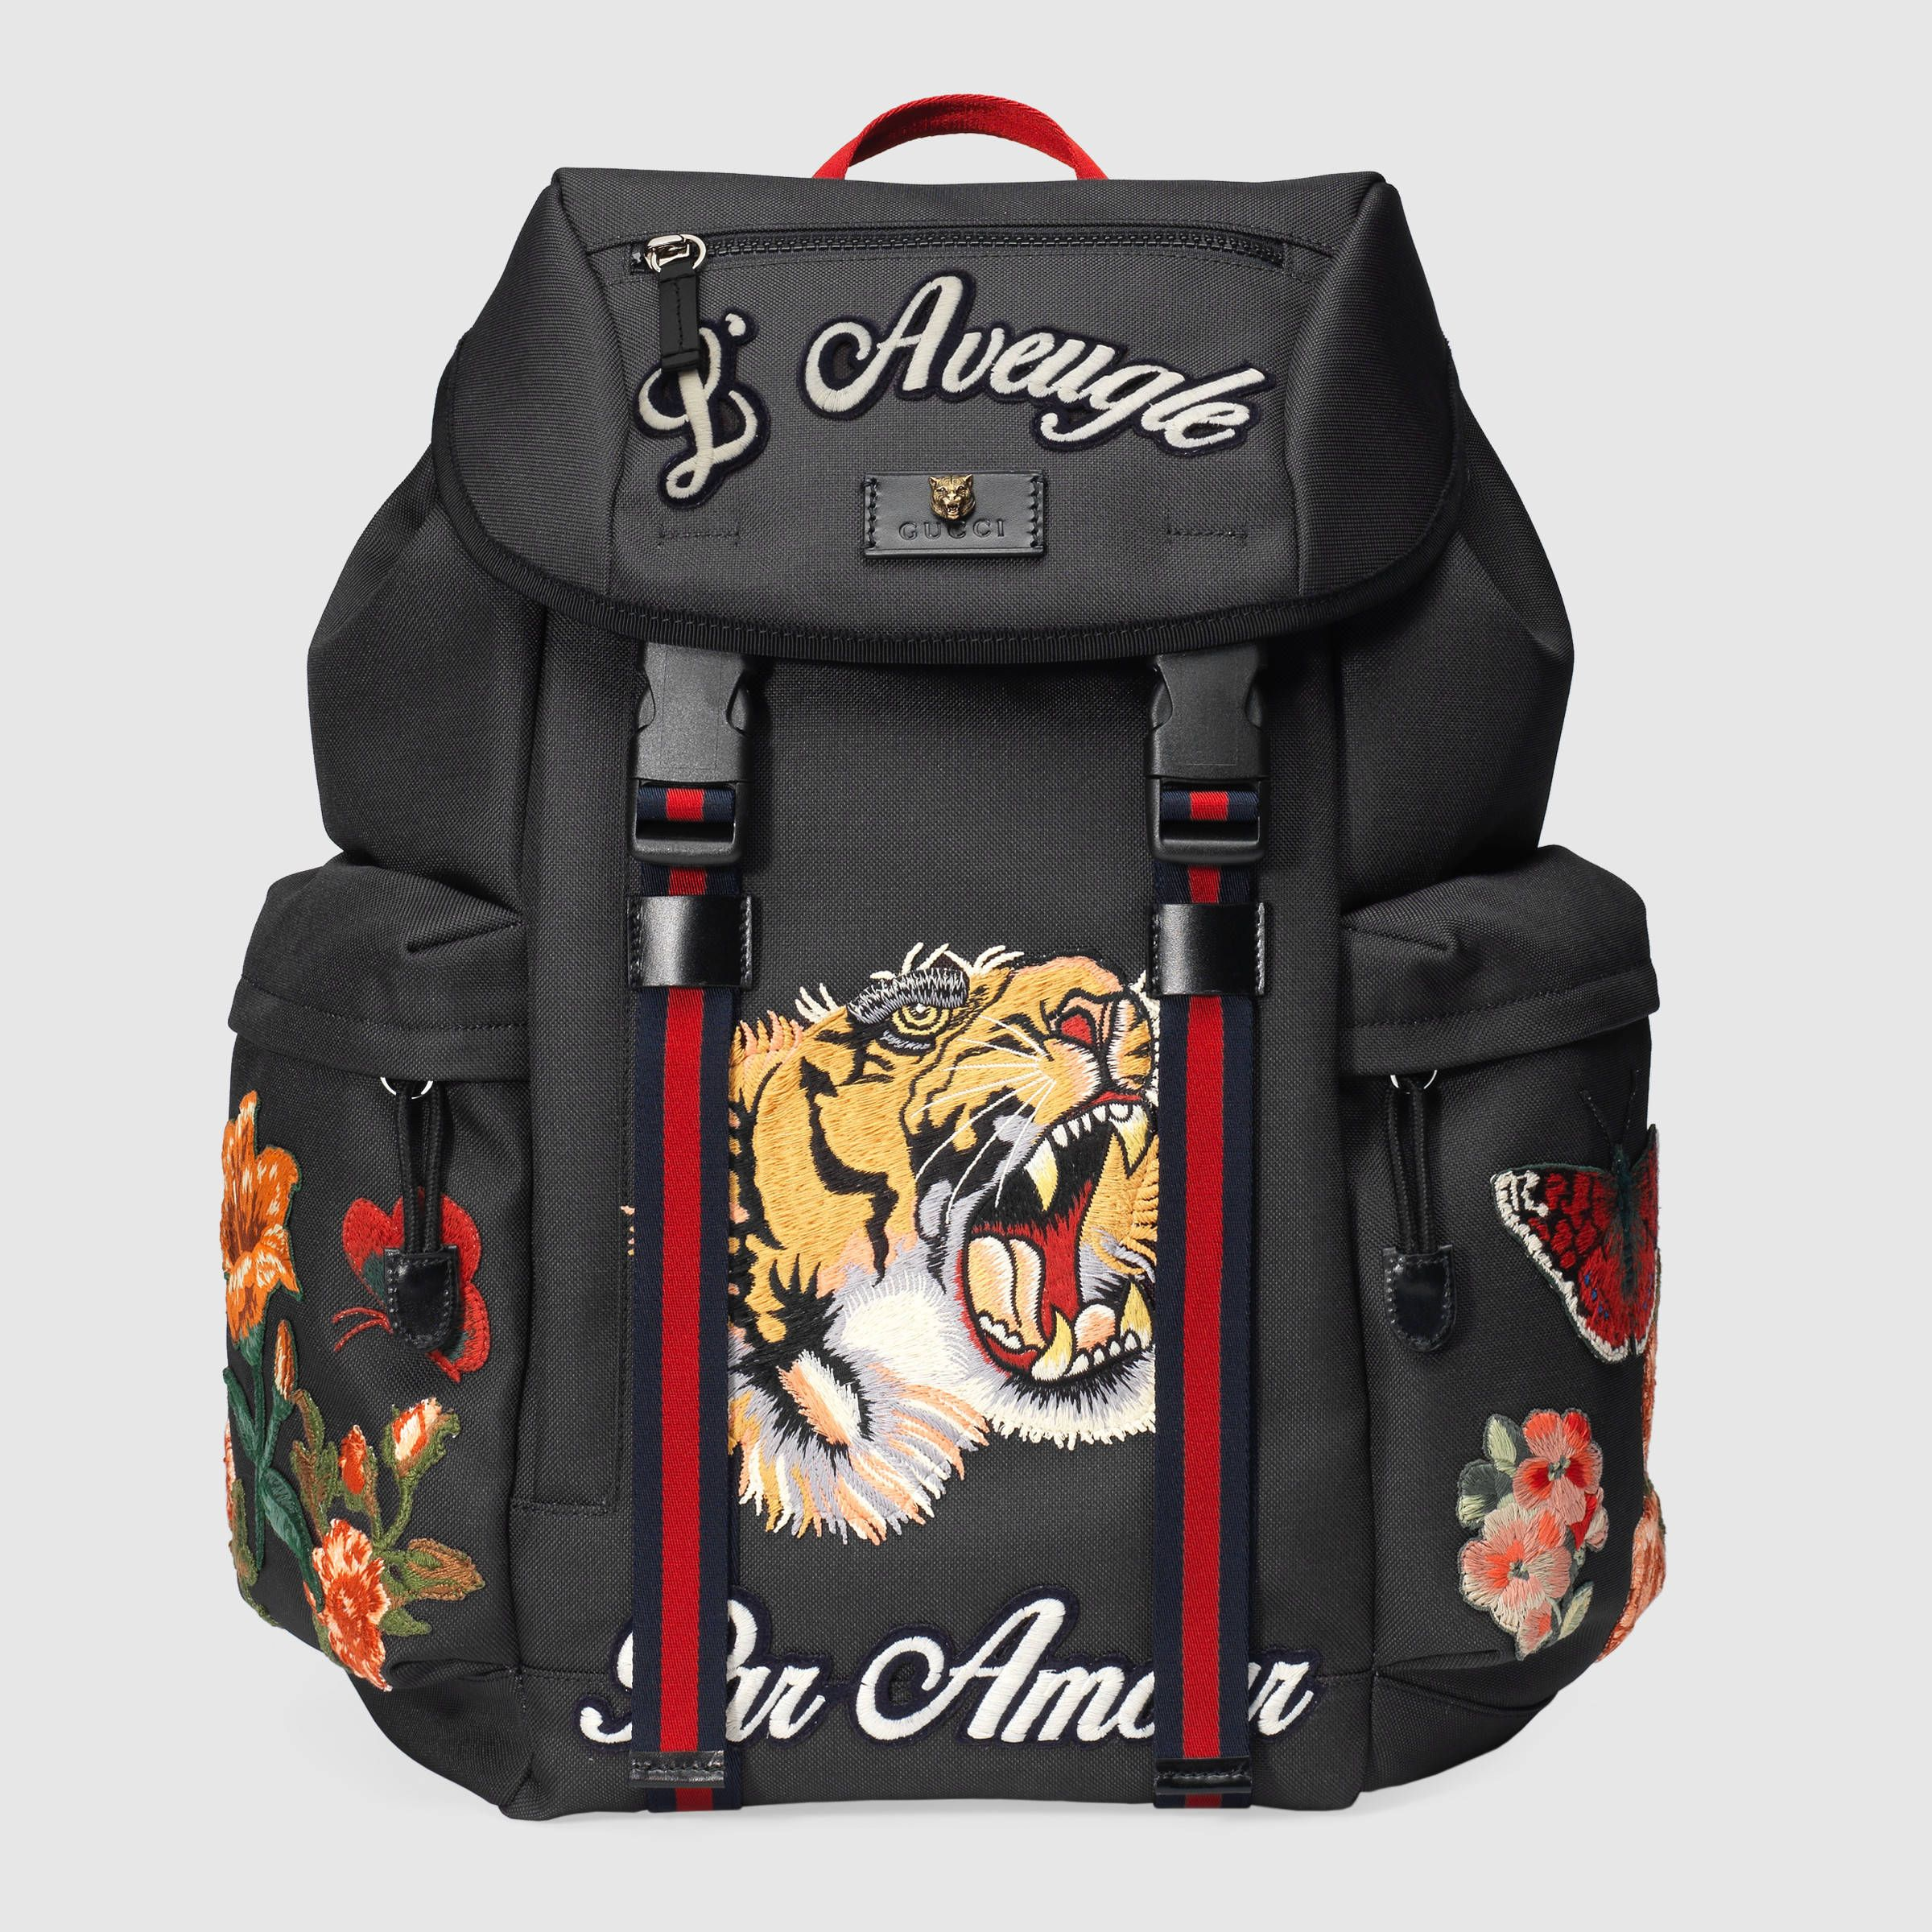 b5c72ff19b5 GUCCI® Techpack in Black Canvas with Tiger and Floral Embroidery   Bags